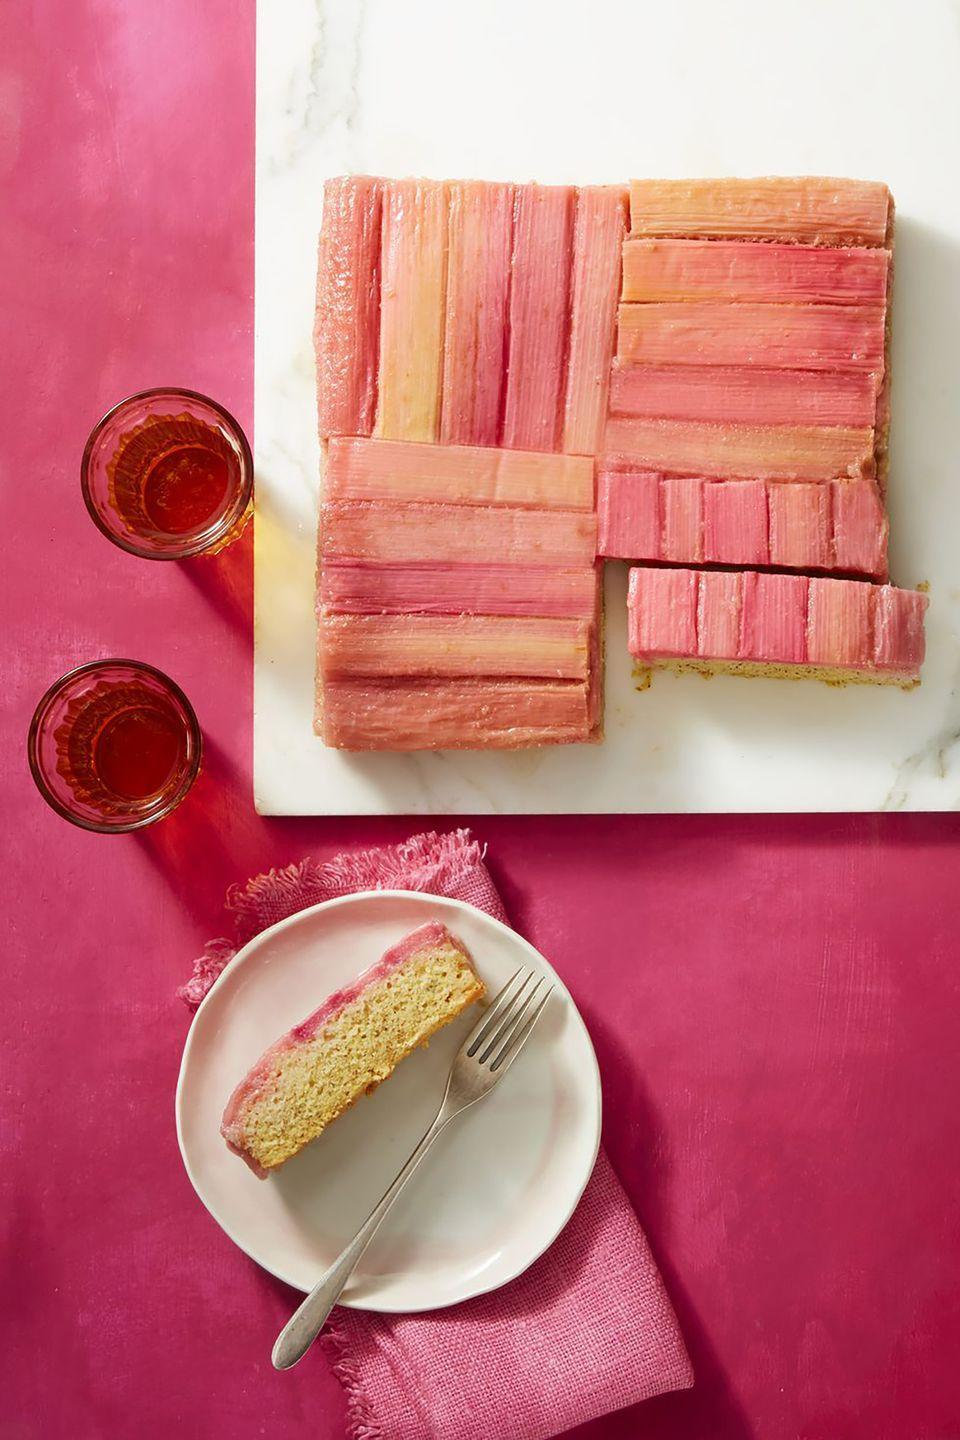 """<p>This melt-in-your-mouth cake is the perfect dessert for <span class=""""redactor-unlink"""">Mother's Day brunch</span>. </p><p><strong><a href=""""https://www.womansday.com/food-recipes/food-drinks/a19810598/rhubarb-and-almond-upside-down-cake-recipe/"""" rel=""""nofollow noopener"""" target=""""_blank"""" data-ylk=""""slk:Get the Rhubarb and Almond Upside-Down Cake recipe."""" class=""""link rapid-noclick-resp""""><em>Get the Rhubarb and Almond Upside-Down Cake recipe.</em></a></strong></p>"""